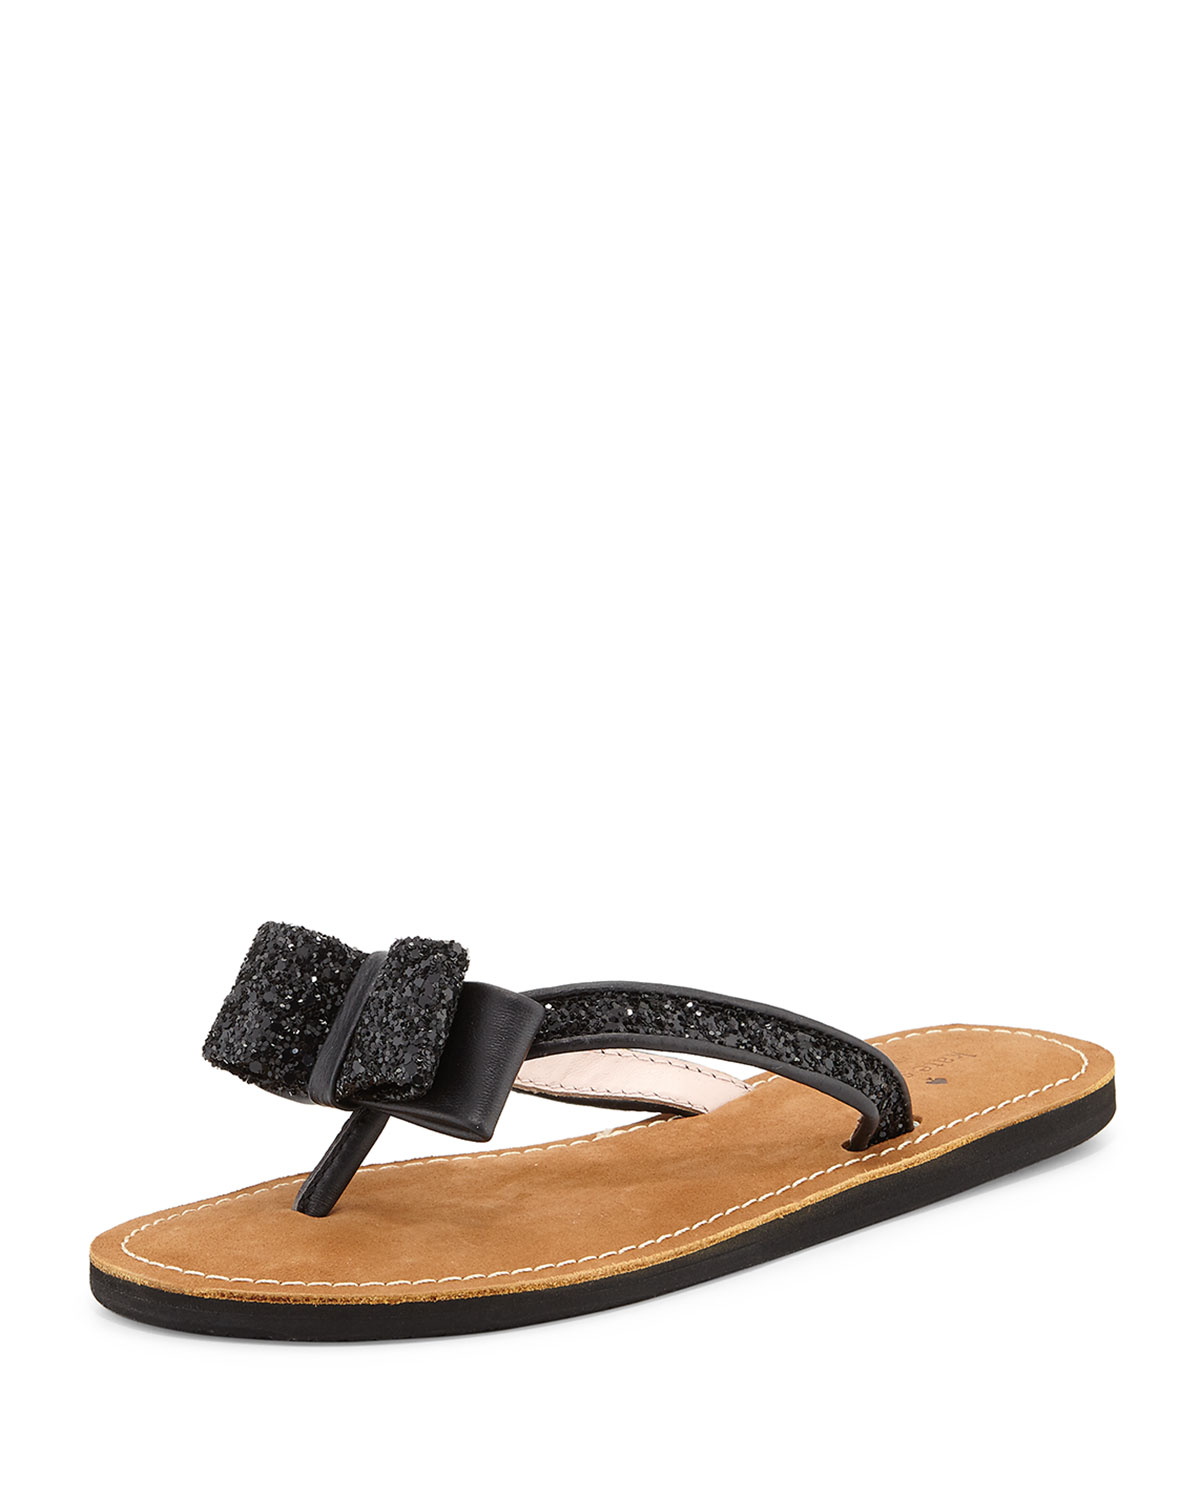 7bb567576 kate spade new york icarda glitter bow thong sandal